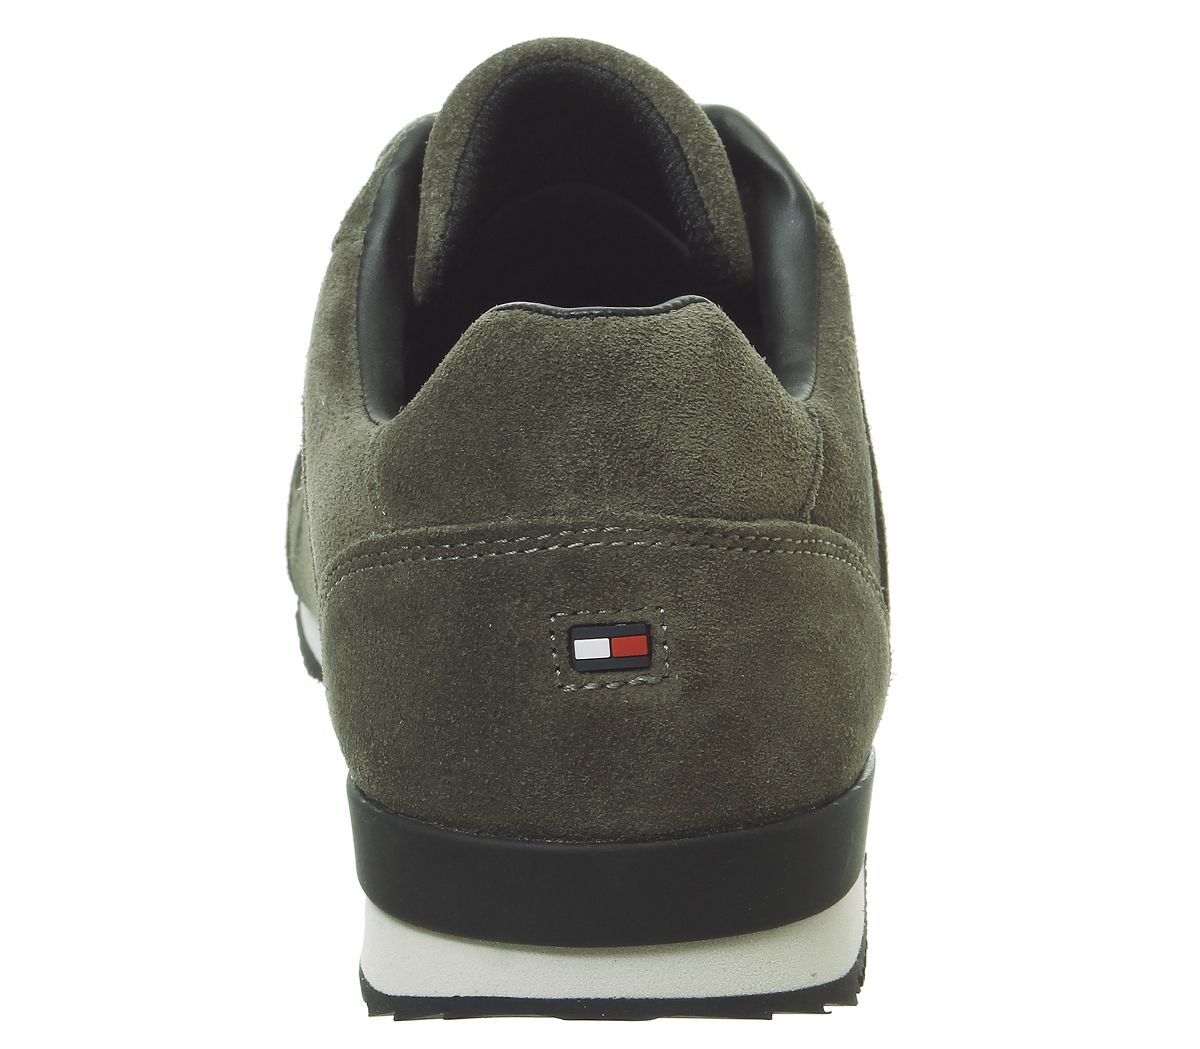 160e455d Mens Tommy Hilfiger Iconic Leather Trainers Khaki Casual Shoes | eBay